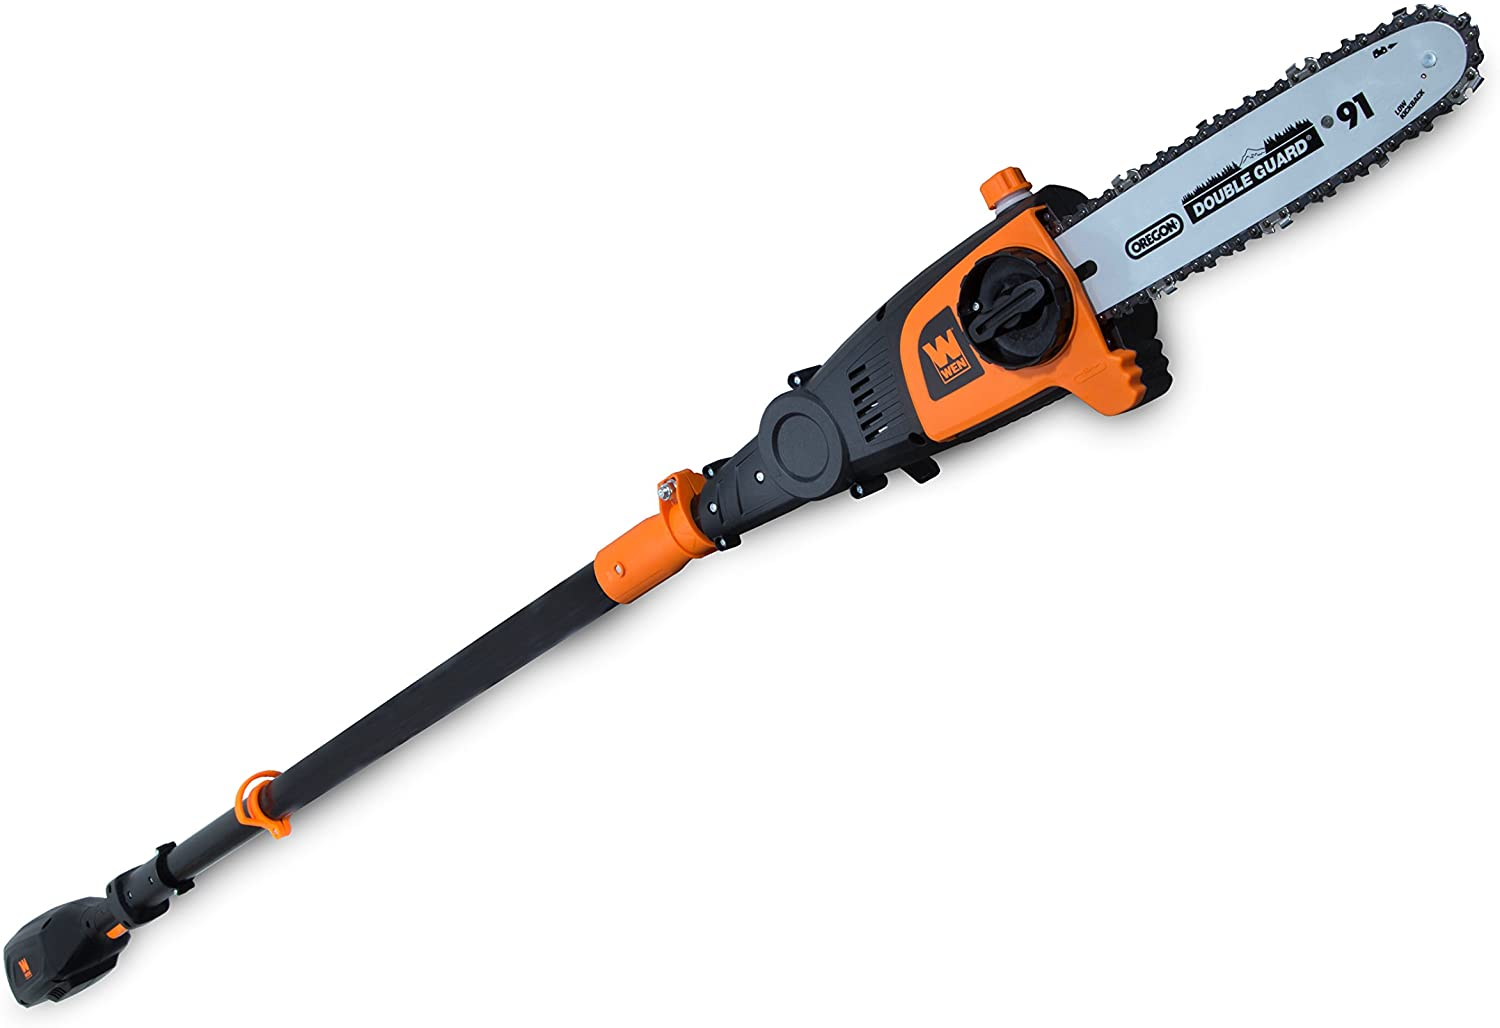 Best Cordless Saw For Cutting Tree Branches